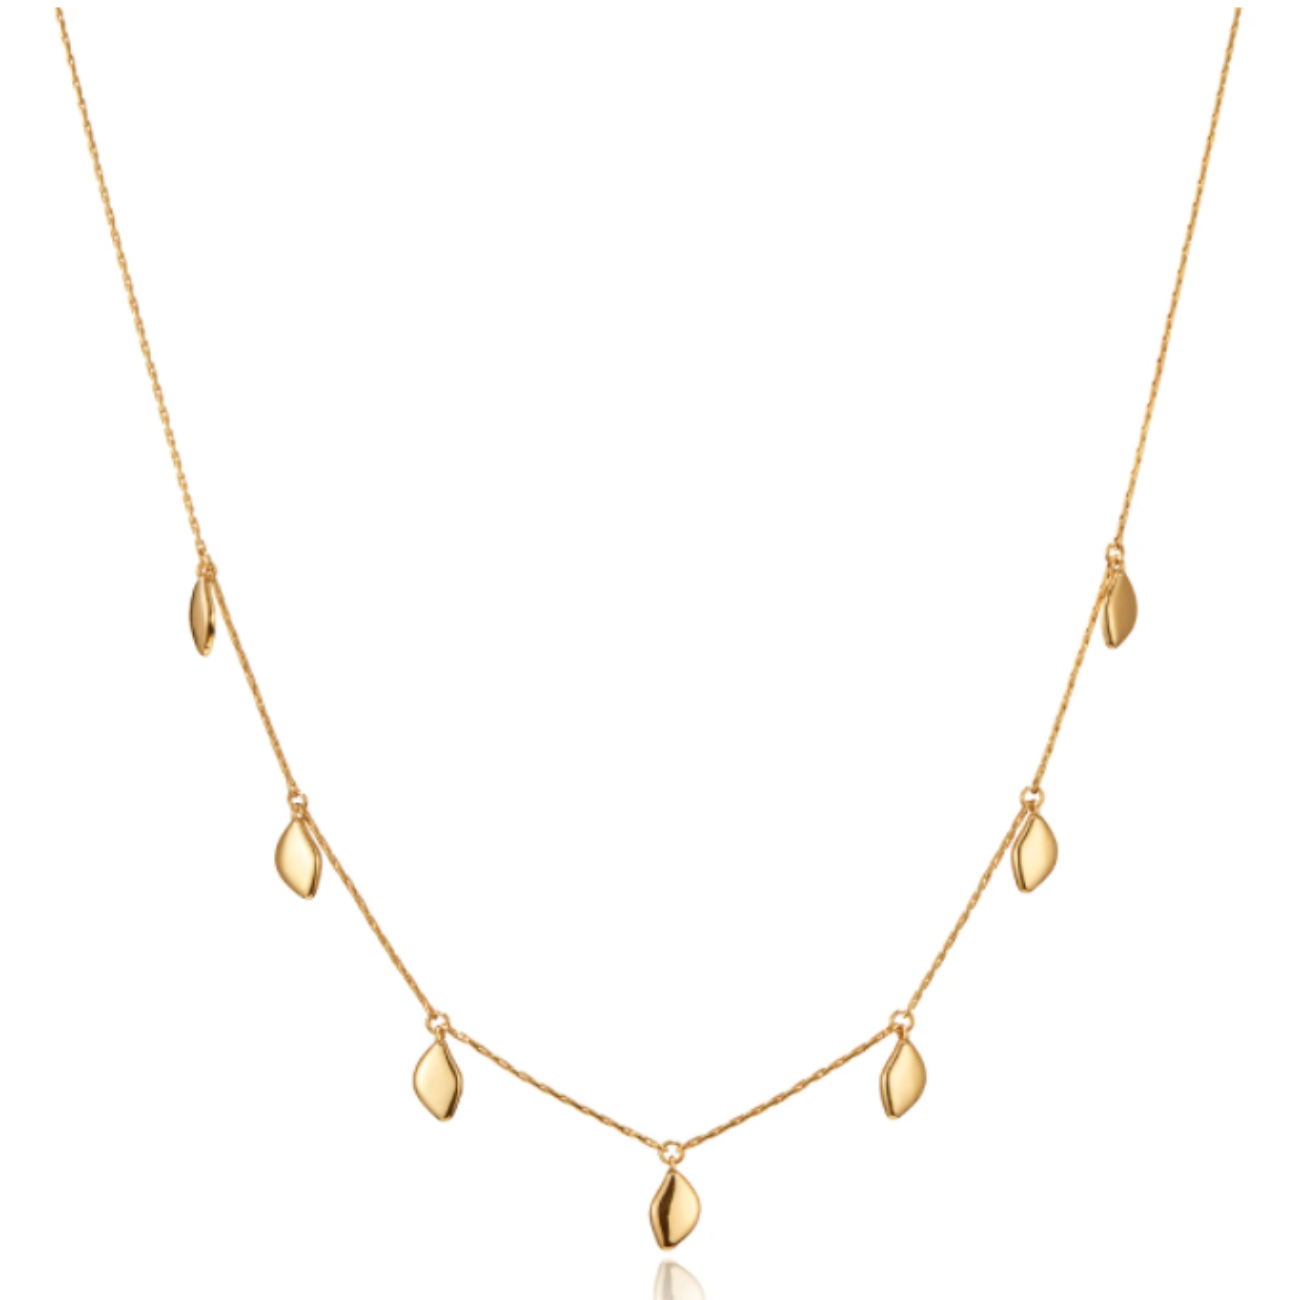 JENNY BIRD - FOLI NECKLACE IN GOLD